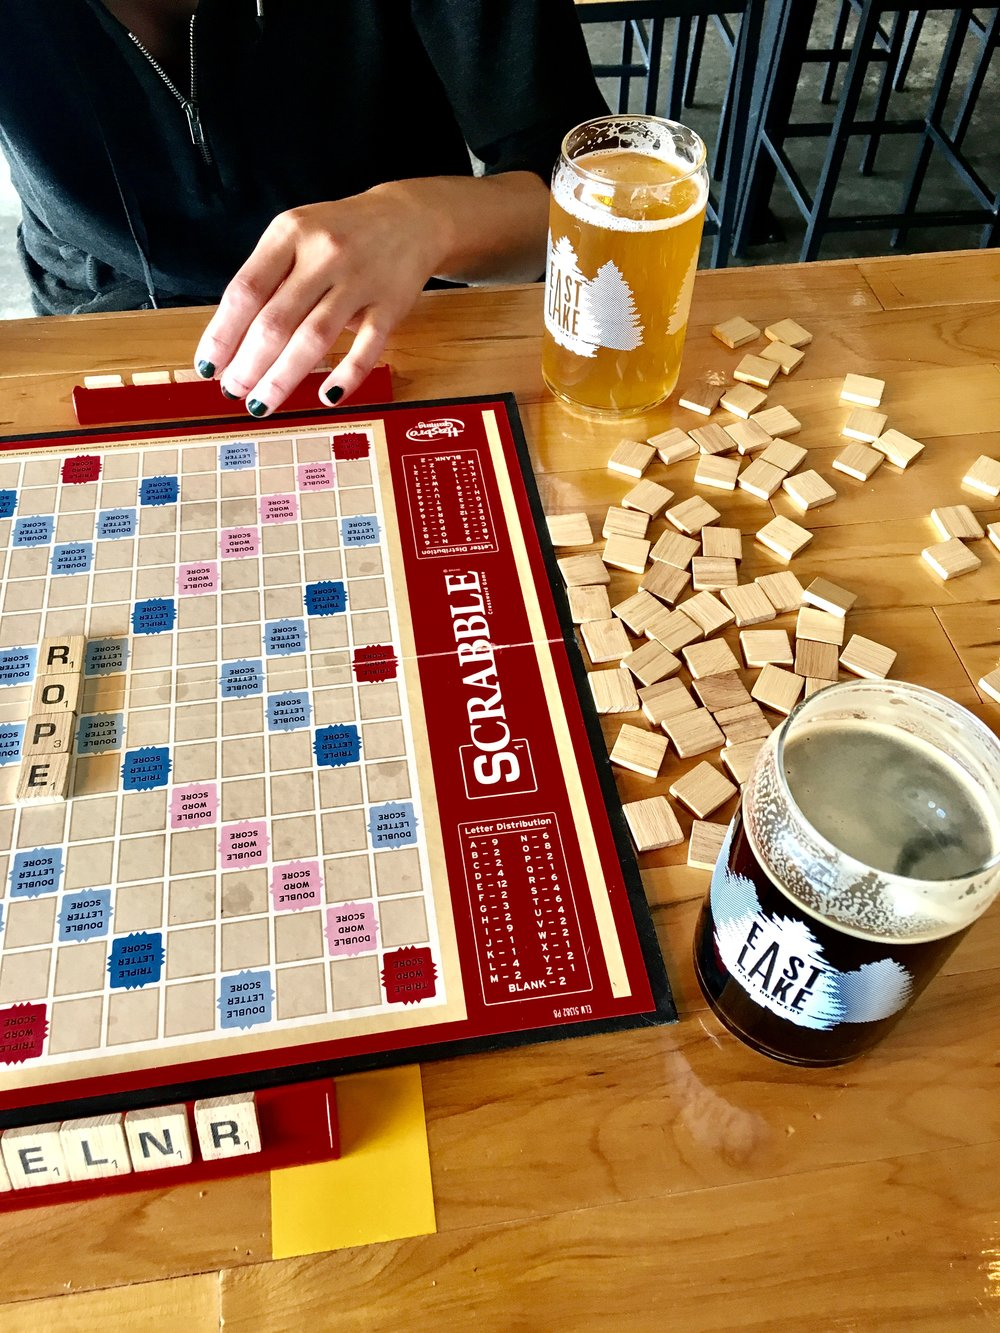 Not only does this place have insane beers, they also have a high stack of great board games! My friend Meg and I attempted to play Scrabble but were quickly side tracked with wanting to order burritos and spring rolls.